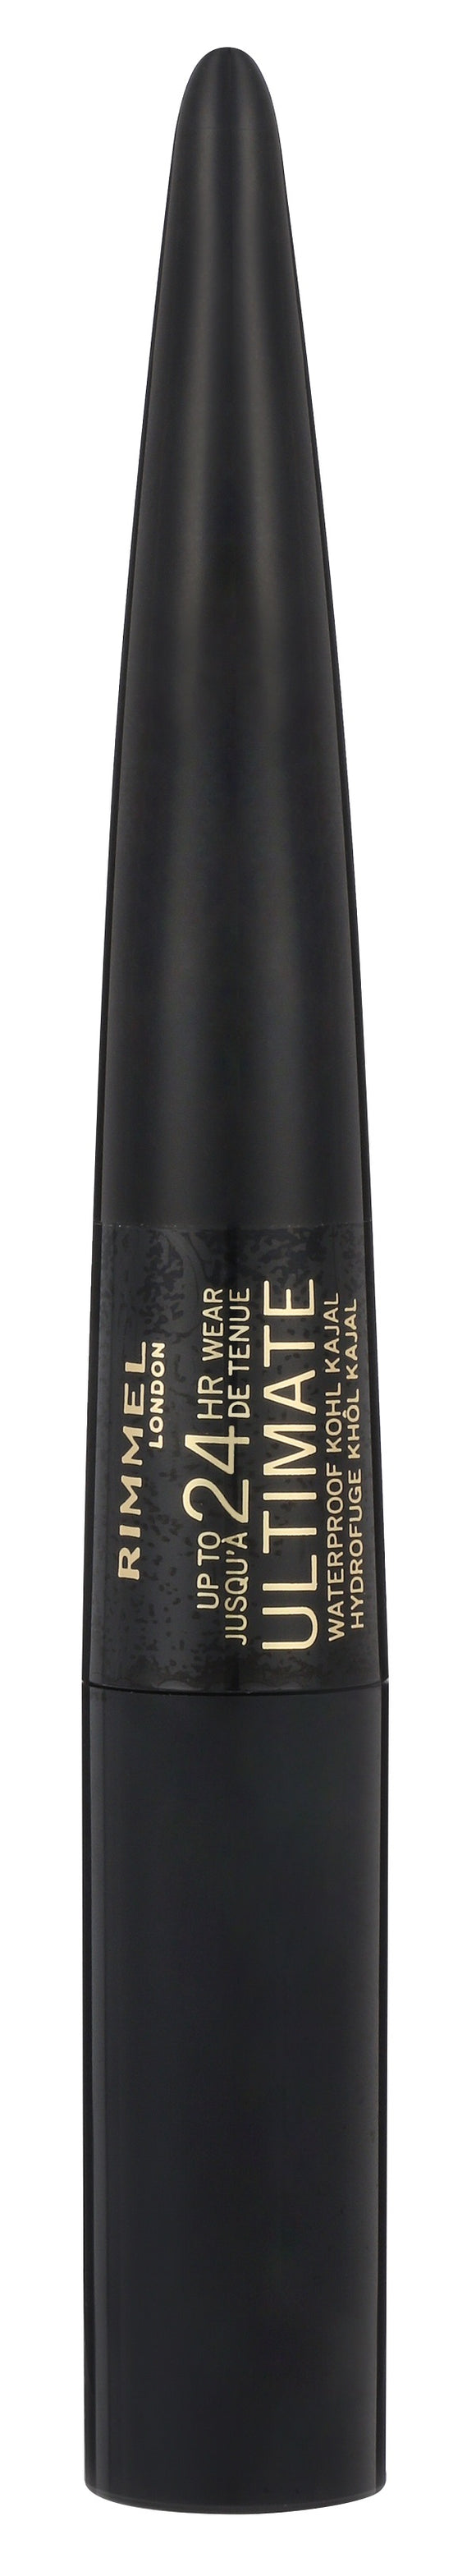 Rimmel Ultimate Kajal Eyeliner Black